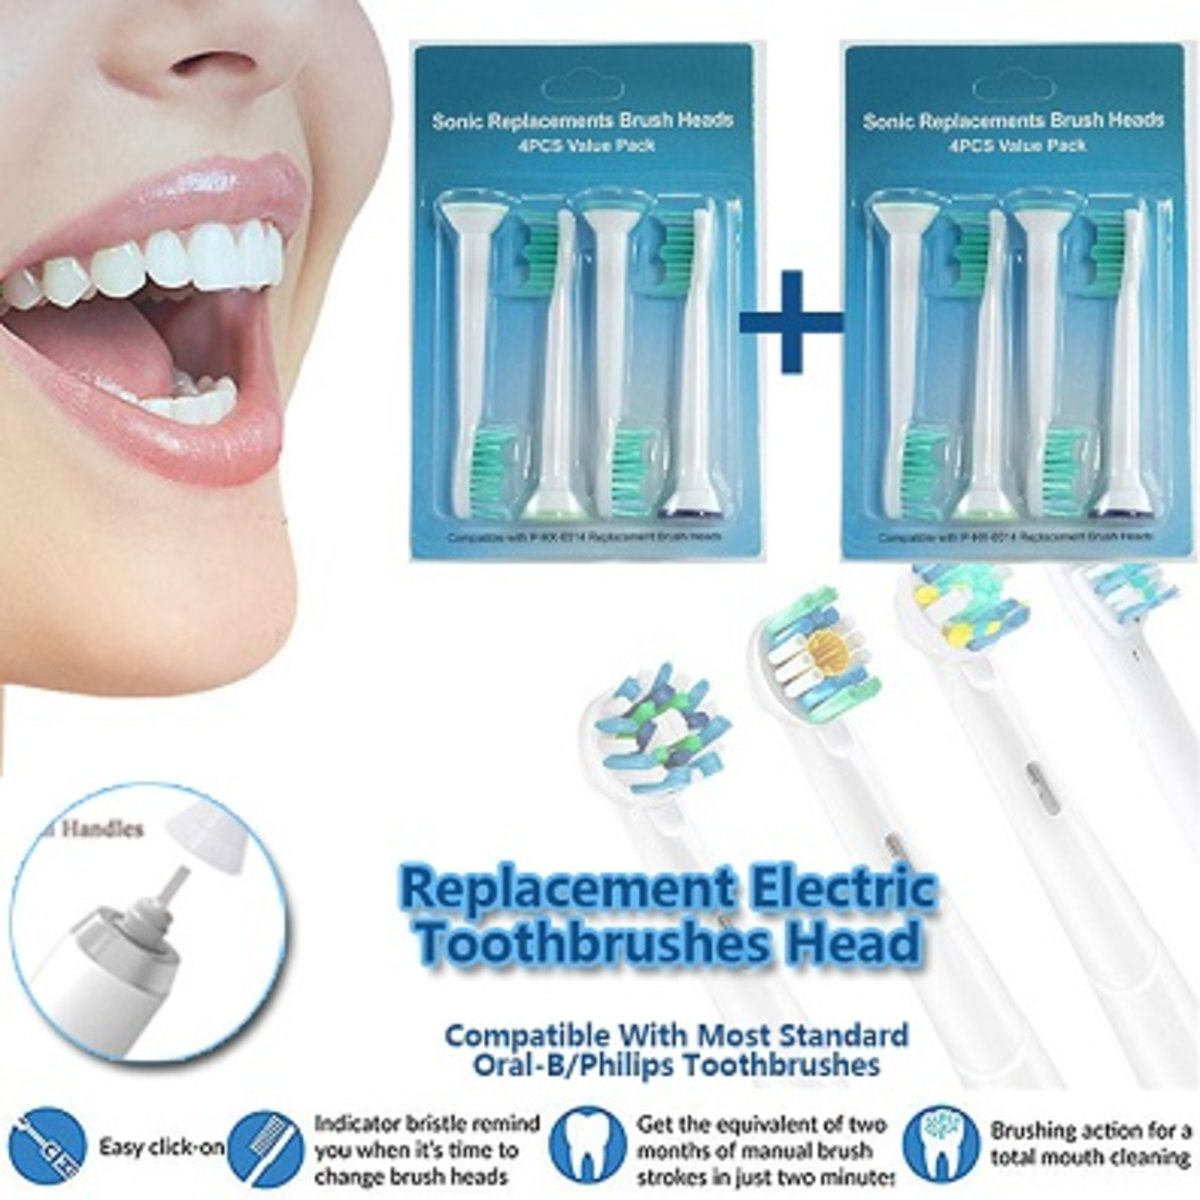 1+1 Replacement Eletric Toothbrushes Head, HX-6014, 2 sets